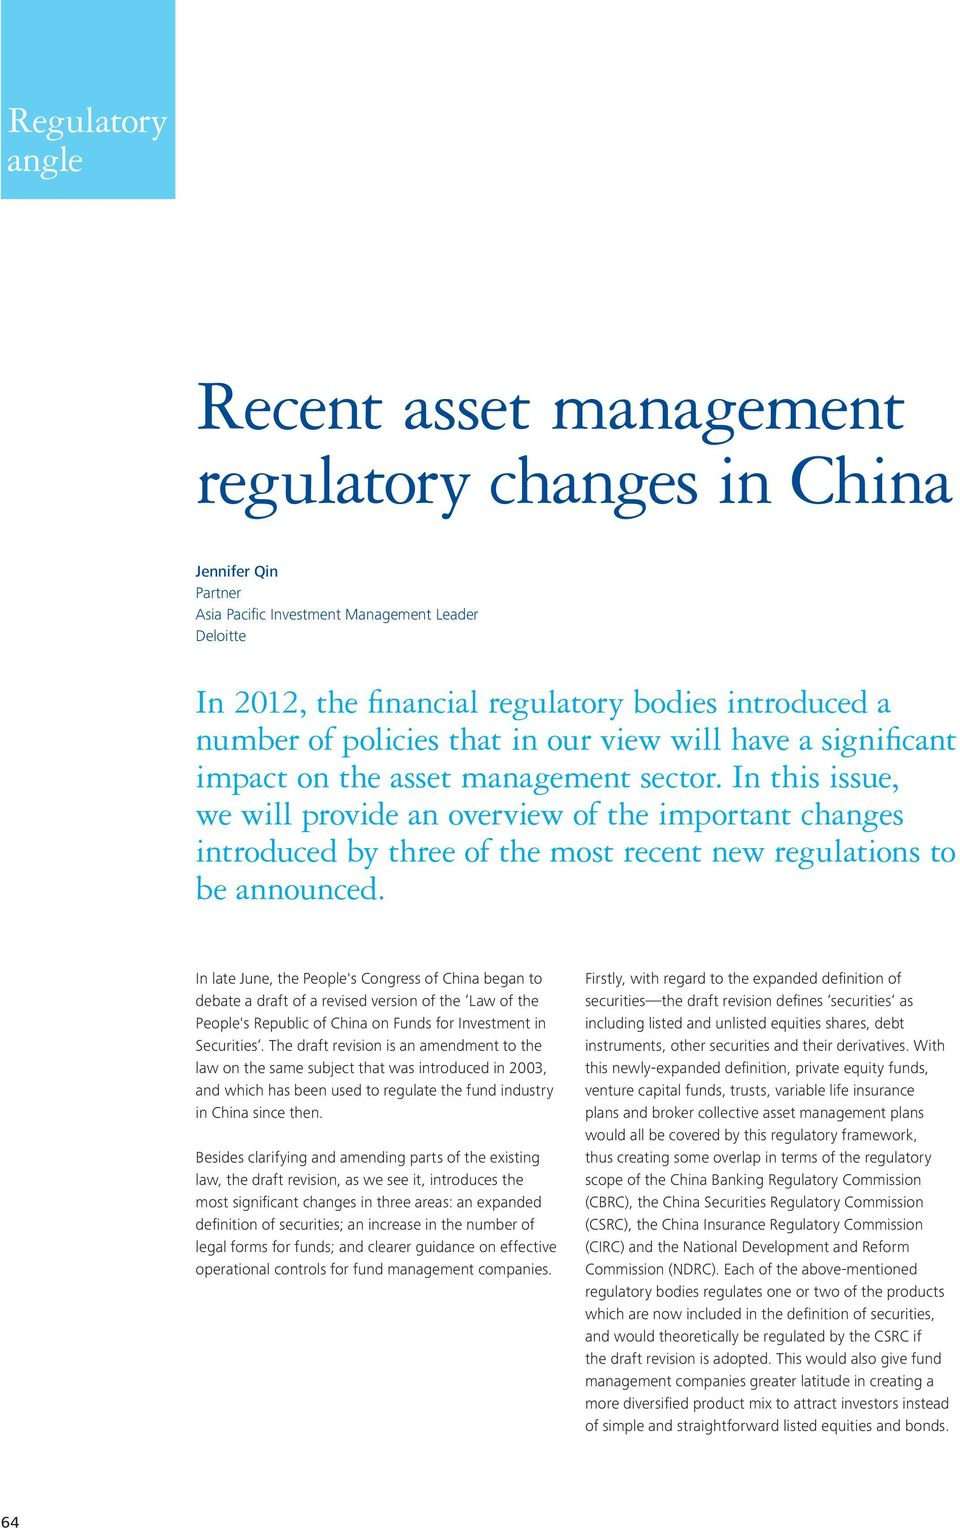 In this issue, we will provide an overview of the important changes introduced by three of the most recent new regulations to be announced.